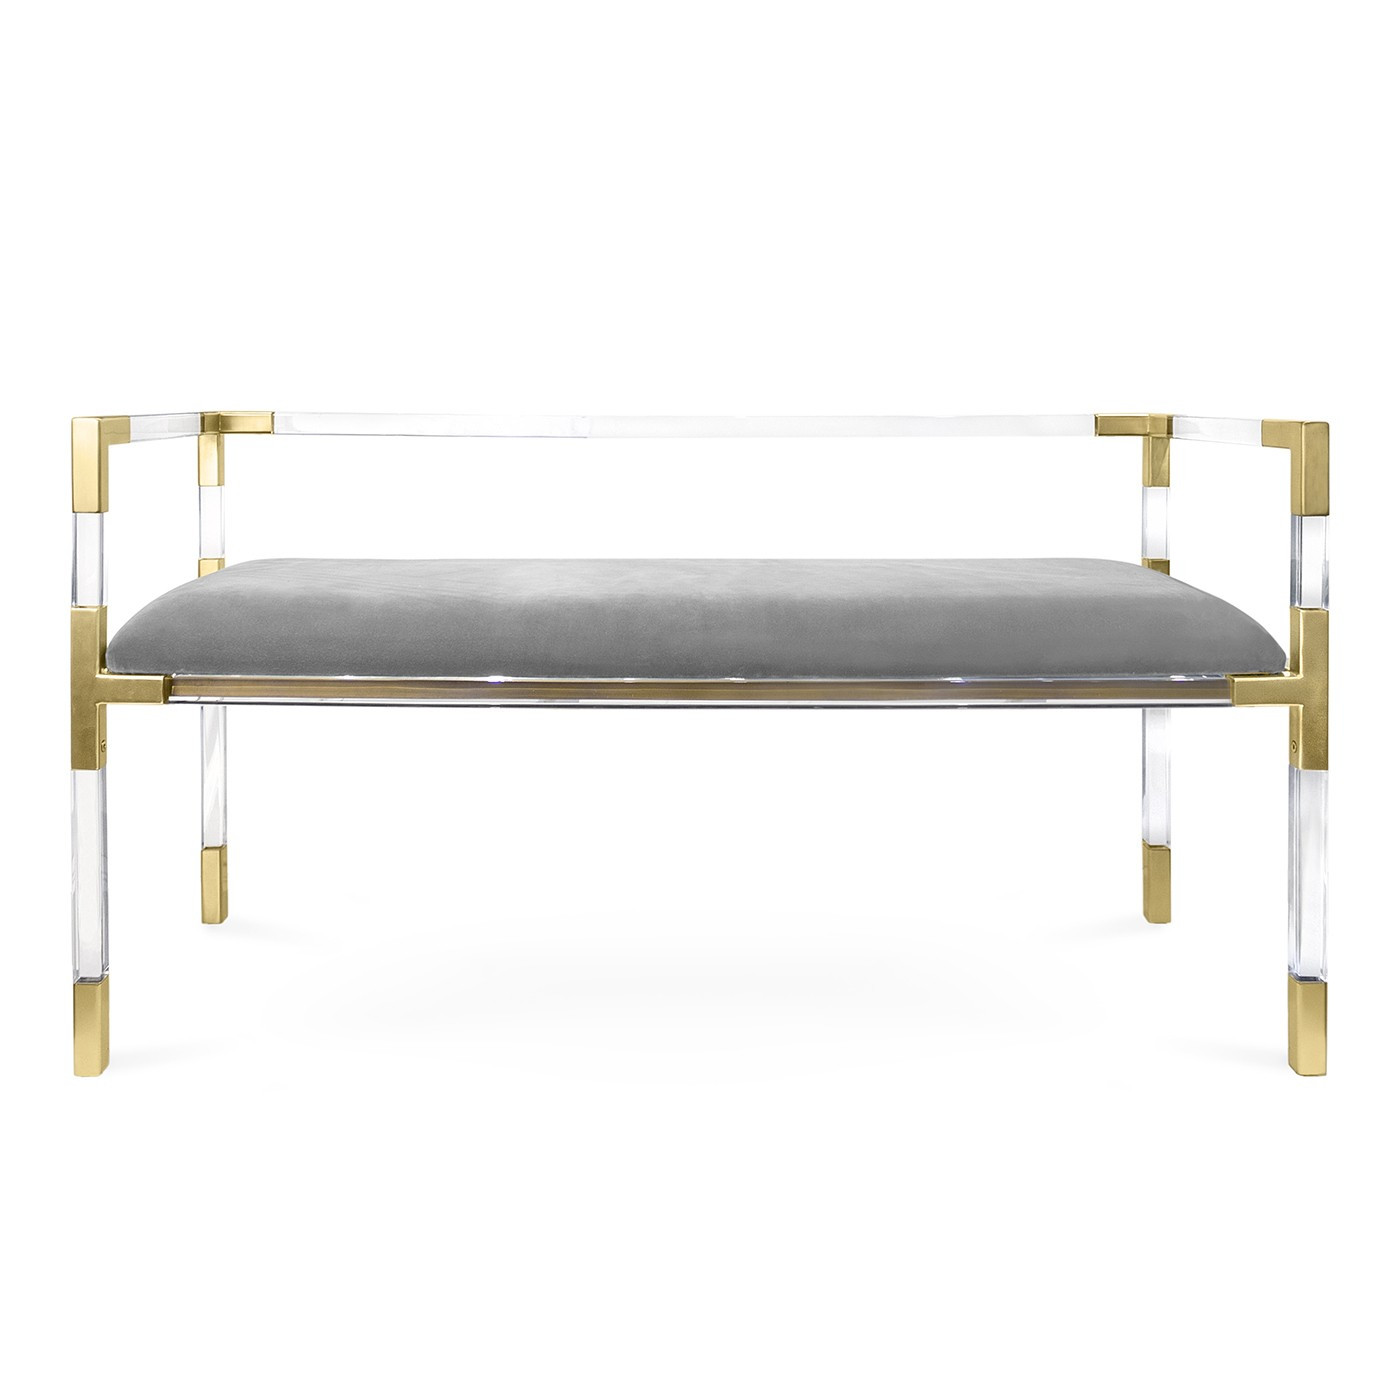 jonathan adler lucite vase of jonathan adler jacques bench within jonathan adler jacques bench m